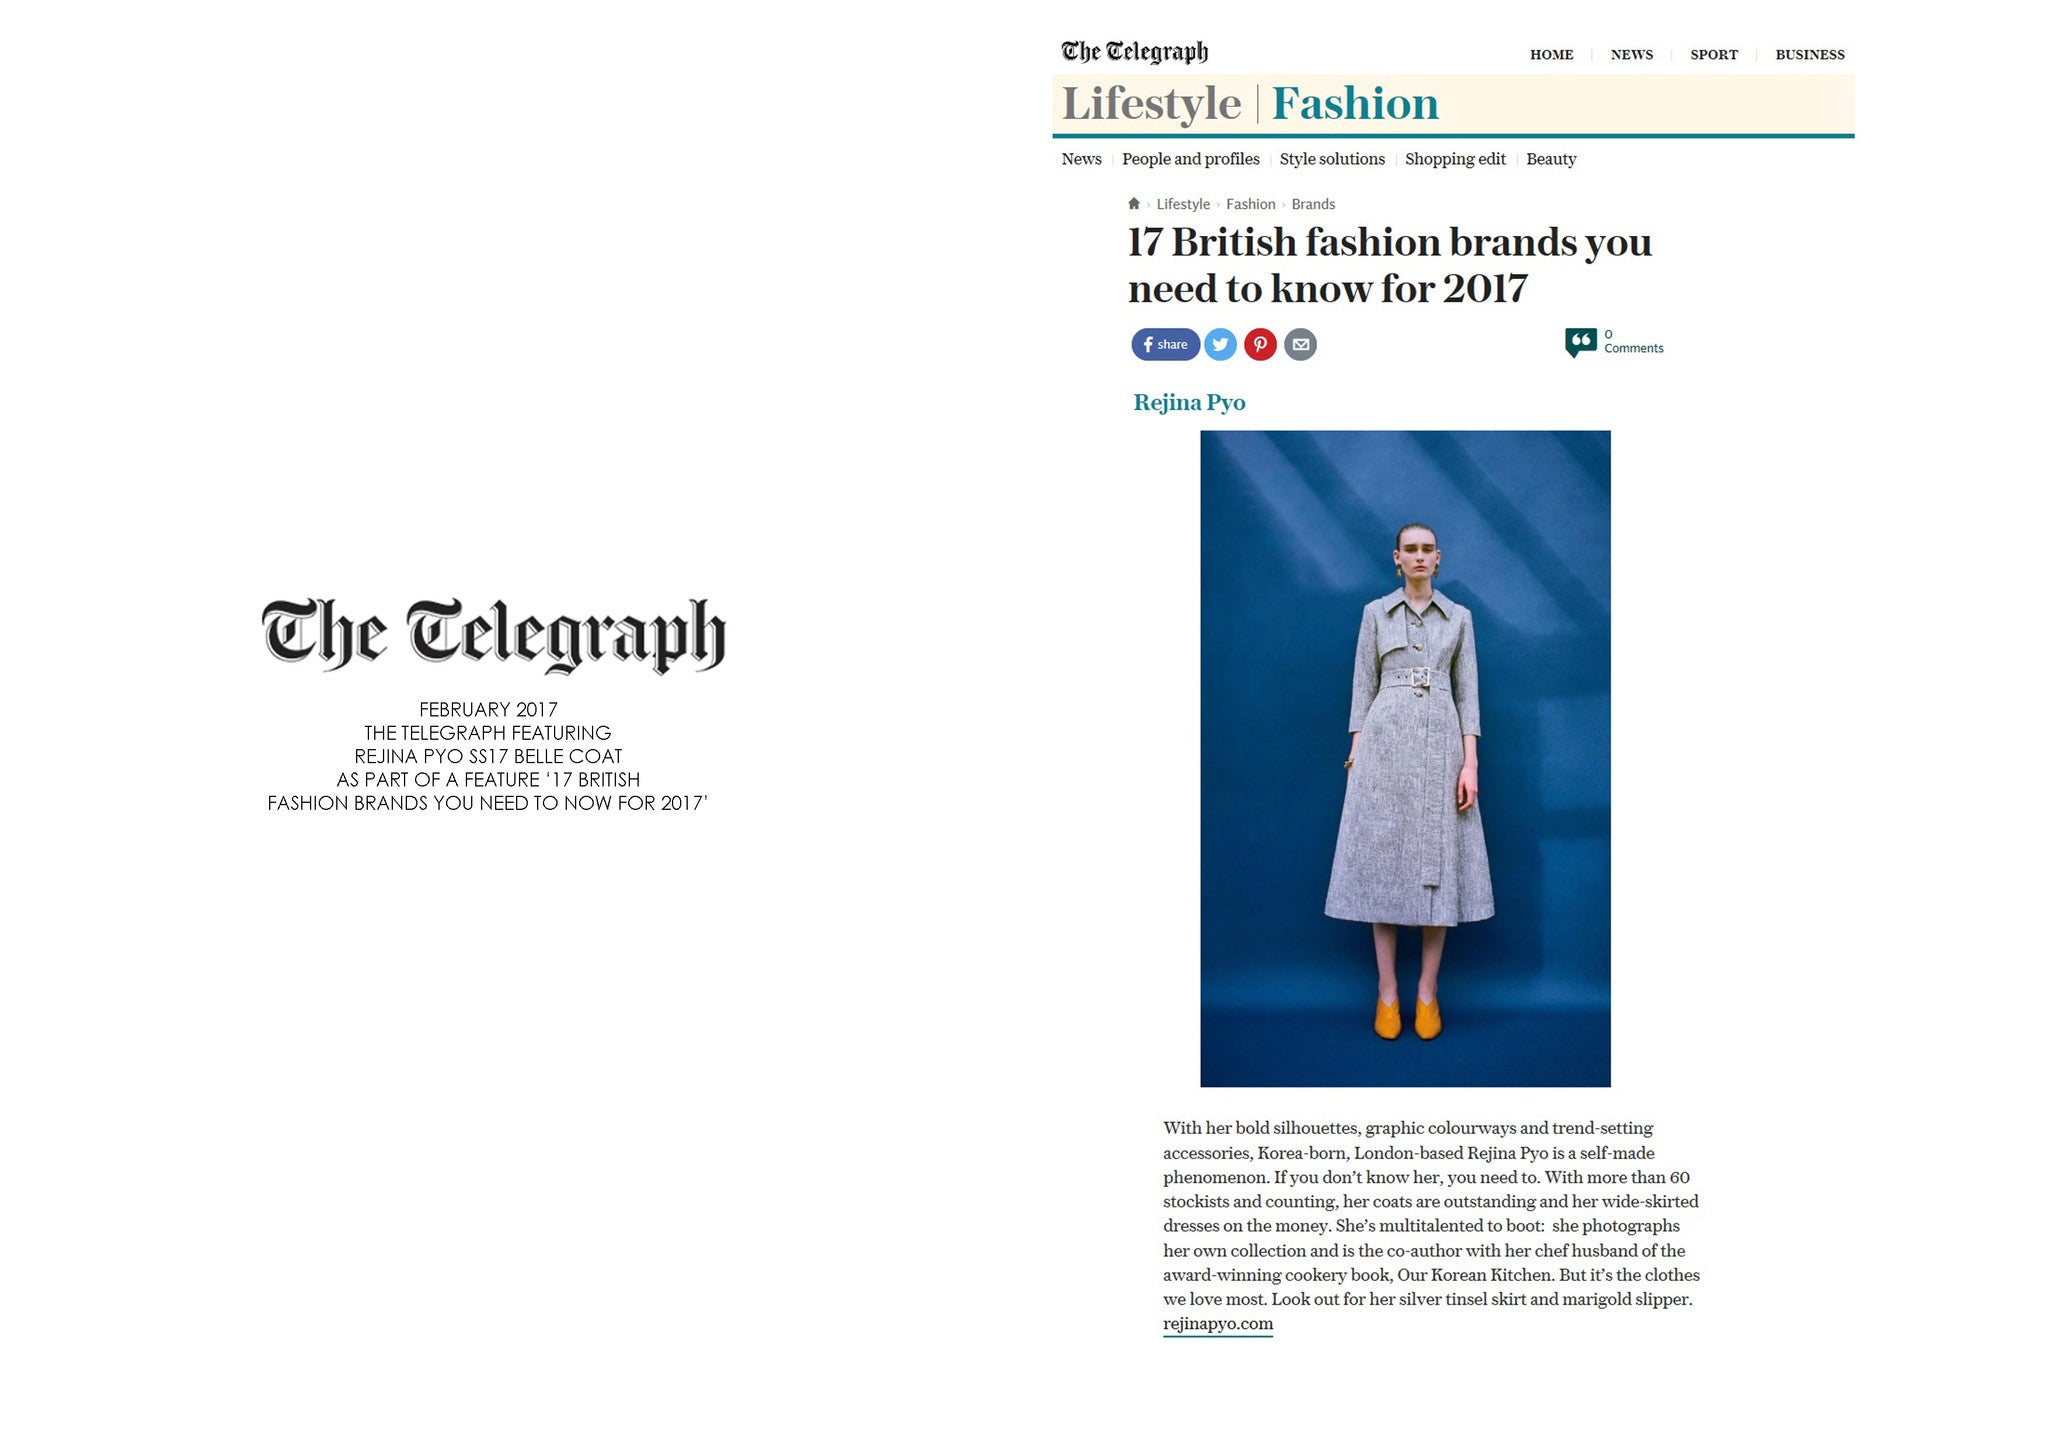 THE TELEGRAPH ONLINE: FEATURING REJINA PYO SS17 BELLE COAT AS PART OF A FASHION FEATURE